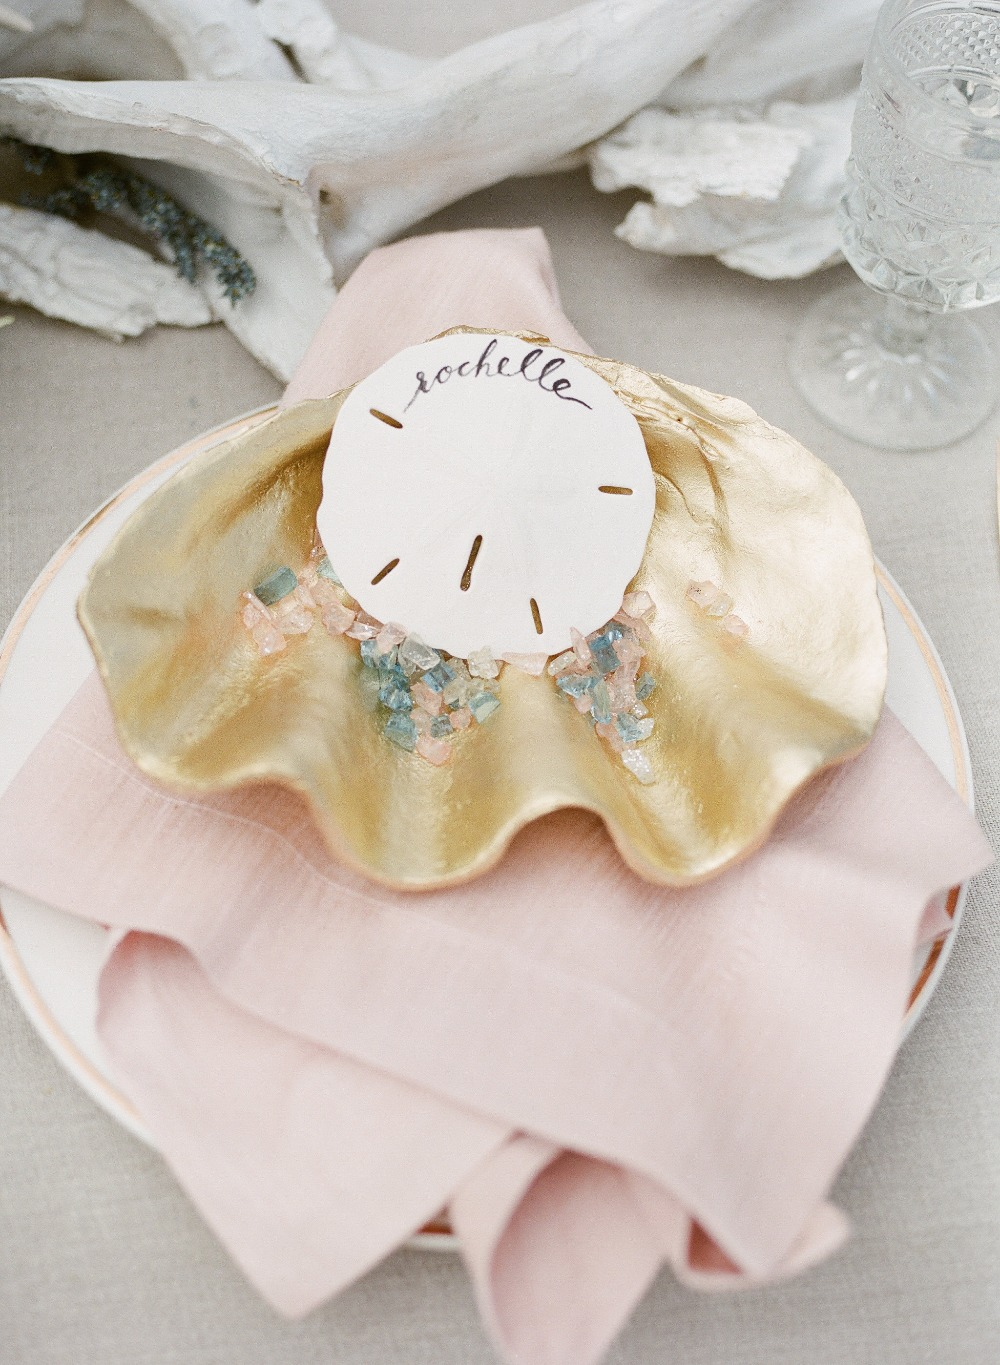 Sea shell place card